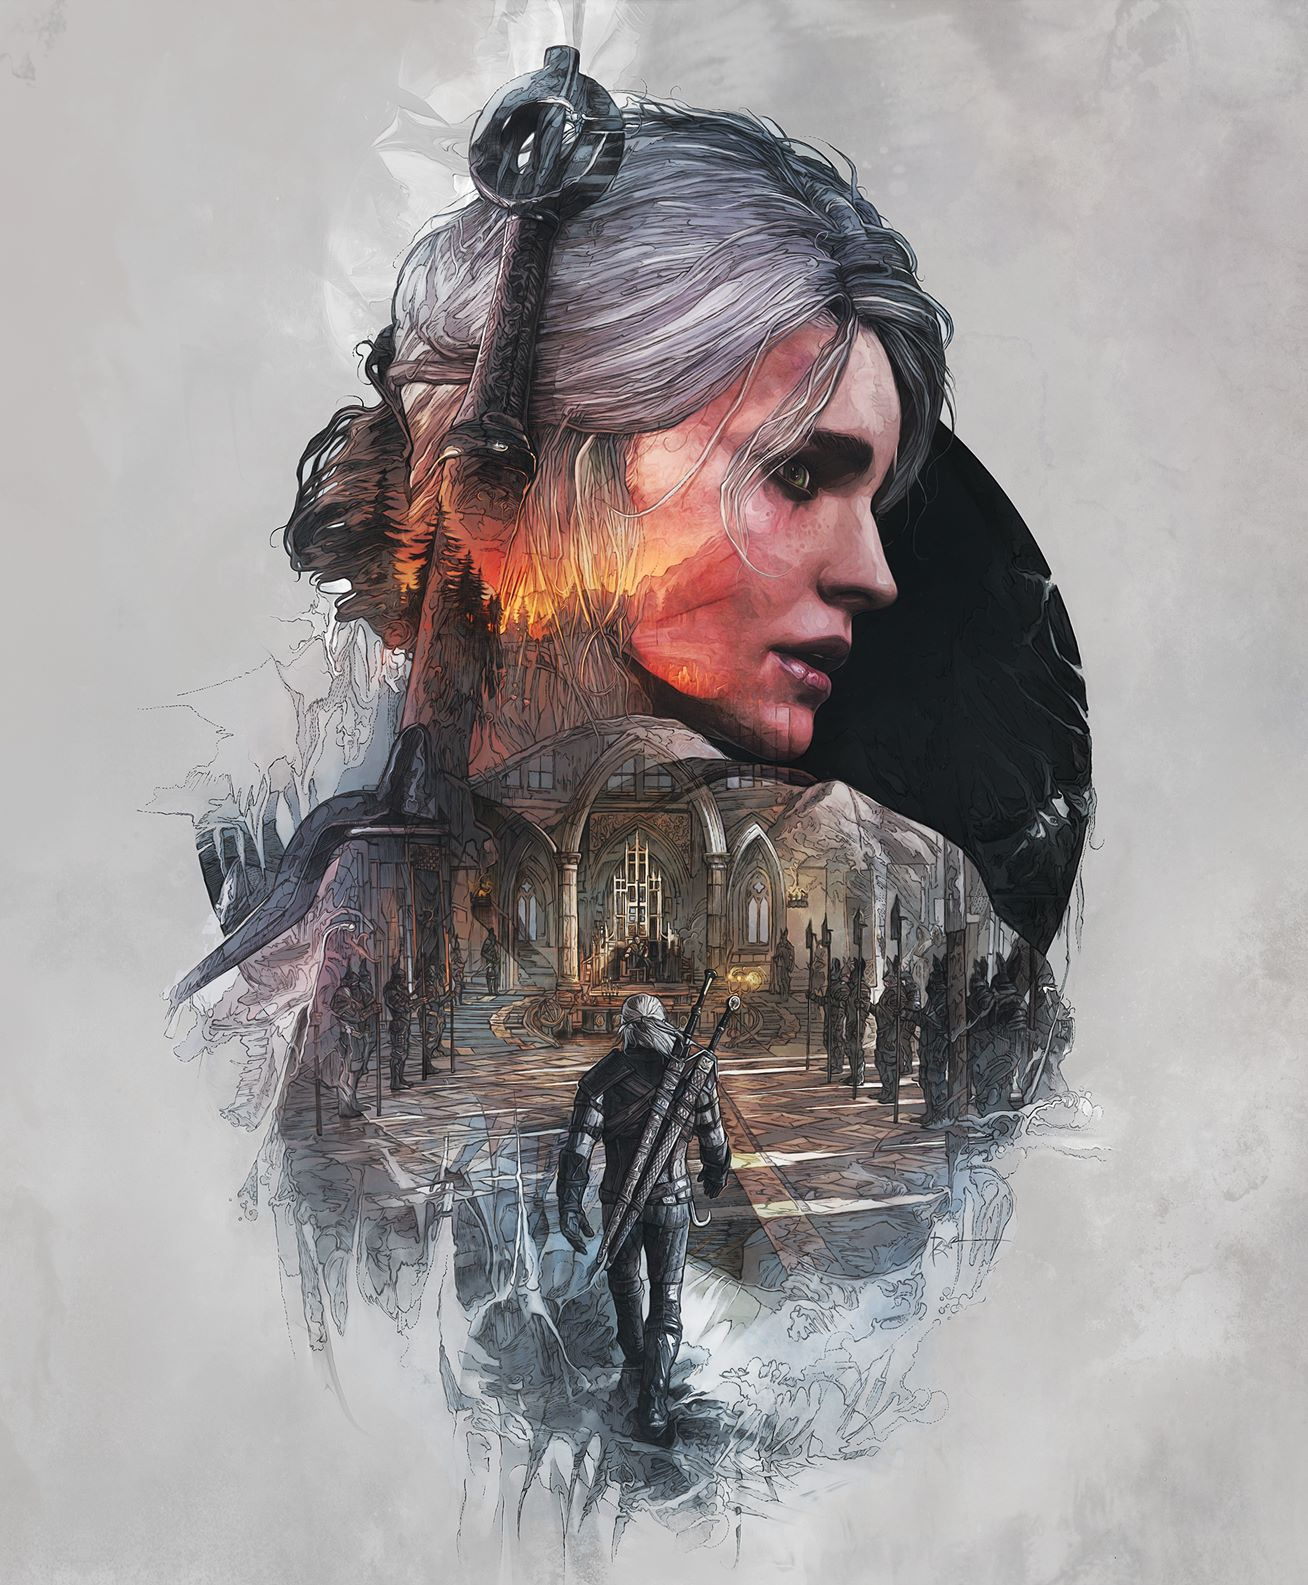 The Witcher 3 No Man's Land Cover Art